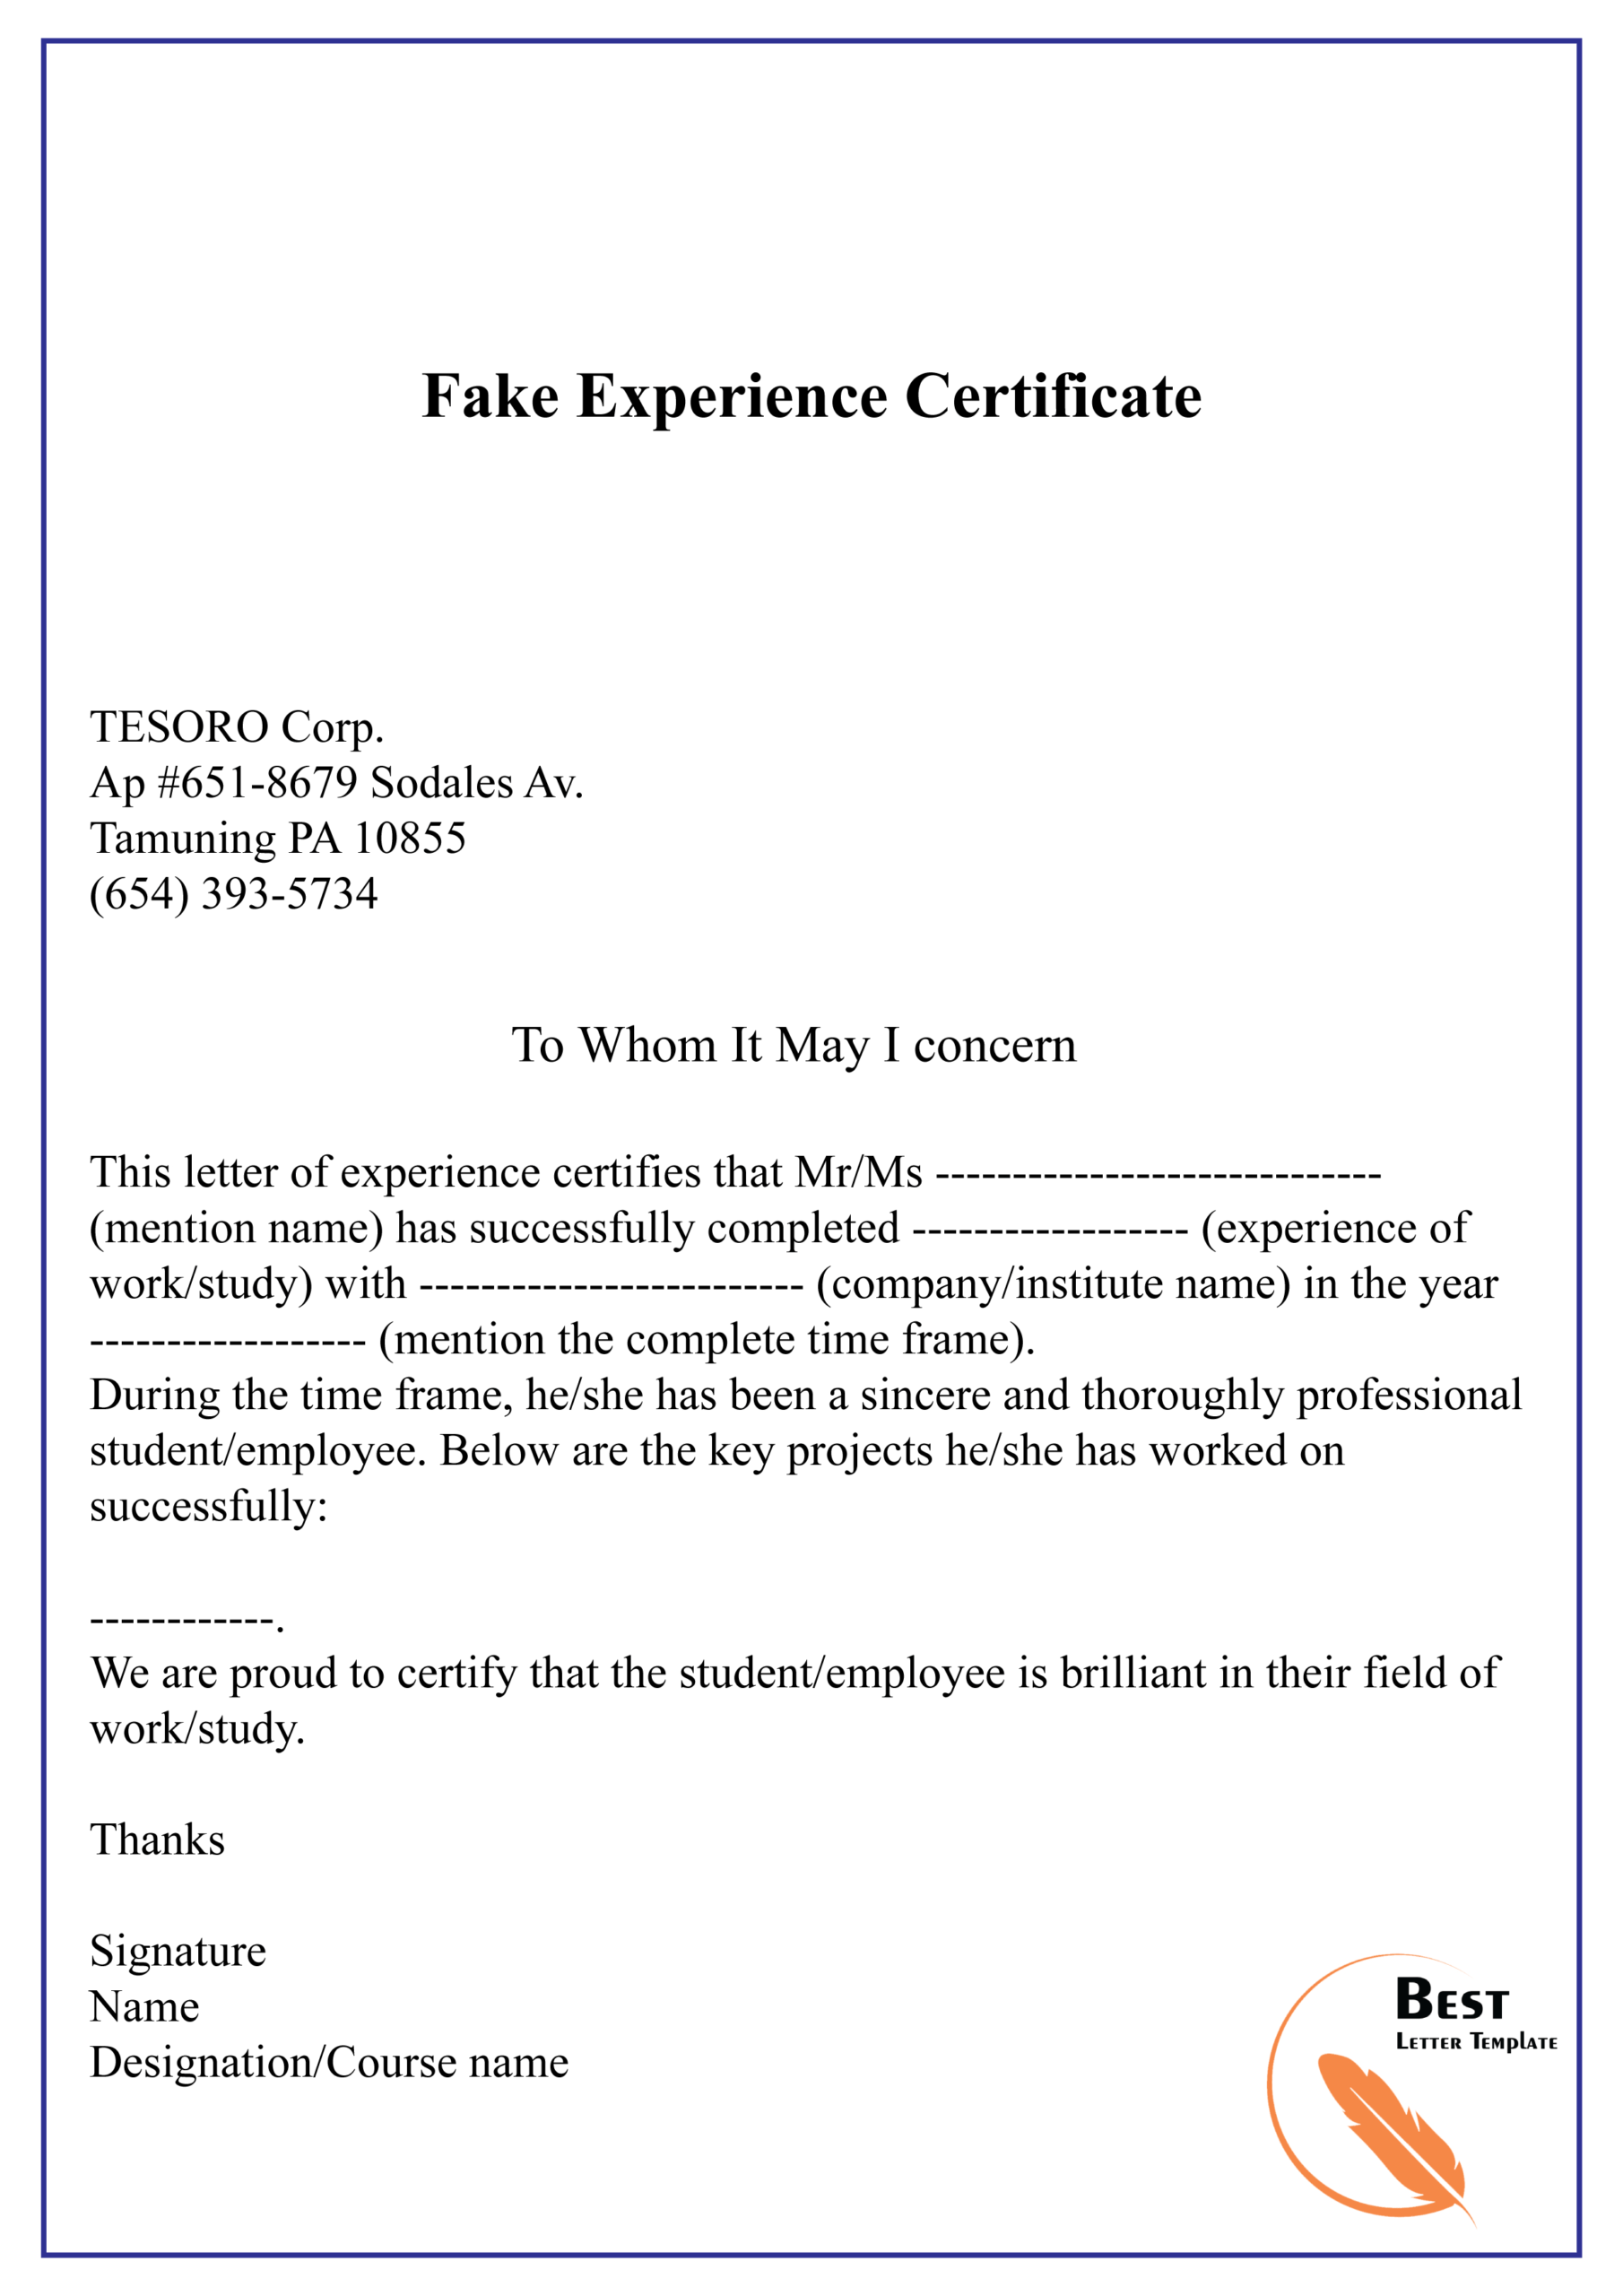 Fake Experience Certificate 01 | Best Letter Template Pertaining To Template Of Experience Certificate